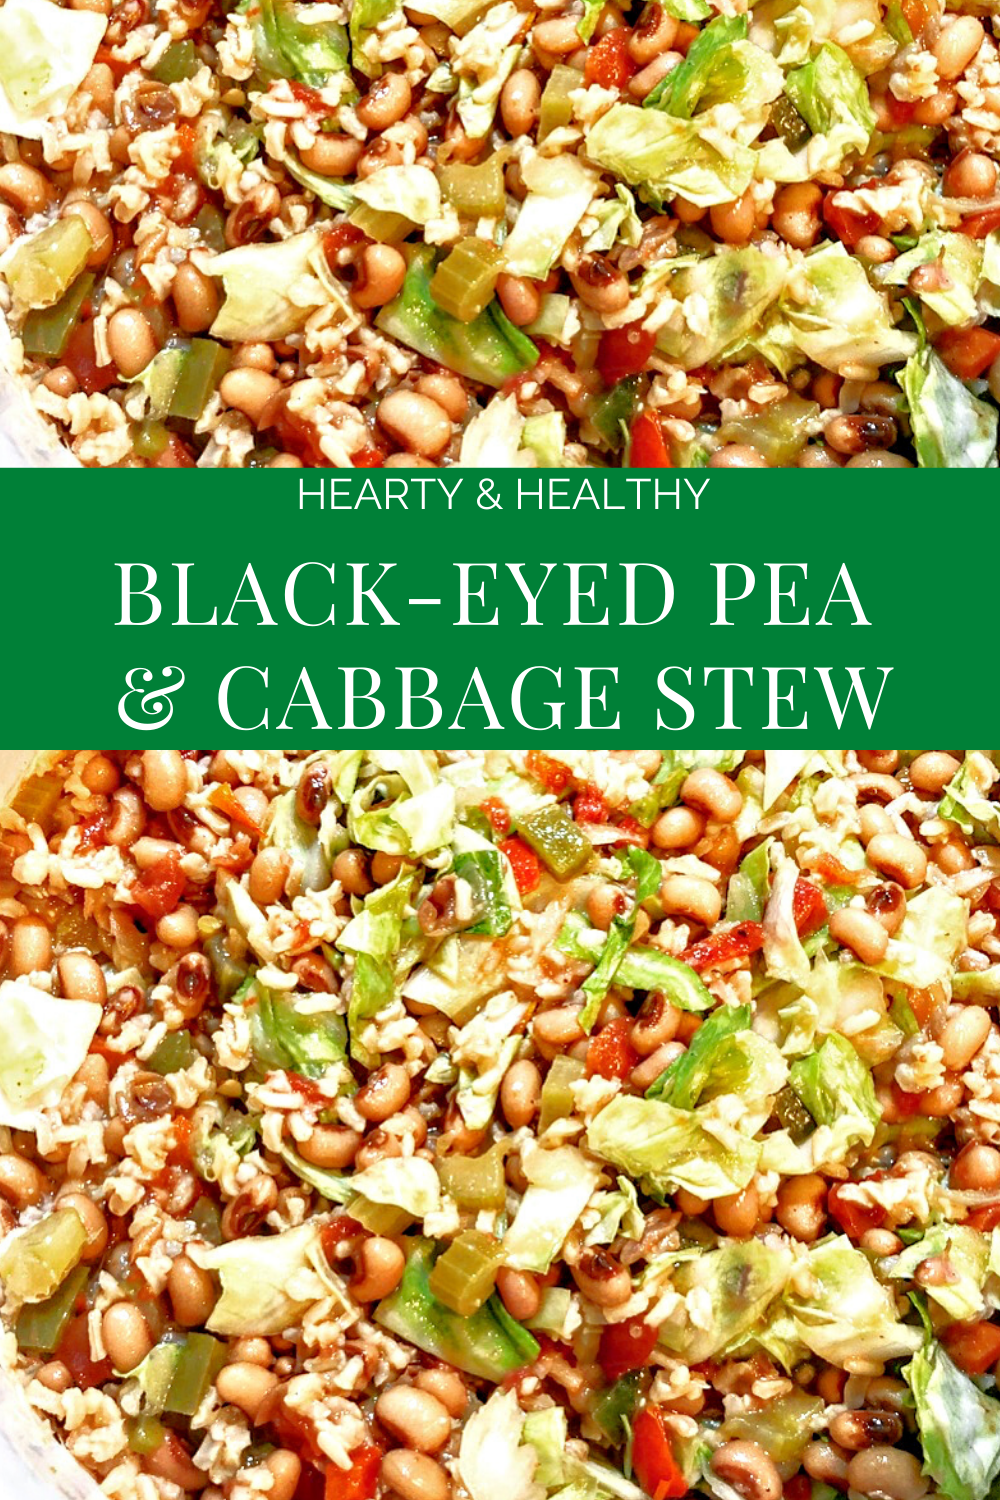 A hearty and healthy vegan black-eyed pea and cabbage stew packed with good-for-you ingredients! | thiswifecooks.com #blackeyedpearecipes #cabbagerecipes #easyveganrecipes #plantbaseddinnerideas #budgetmealideas #highproteinveganrecipes #thiswifecooksrecipes #blackeyedpeaandcabbage #easyvegandinner #plantbaseddinner via @thiswifecooks